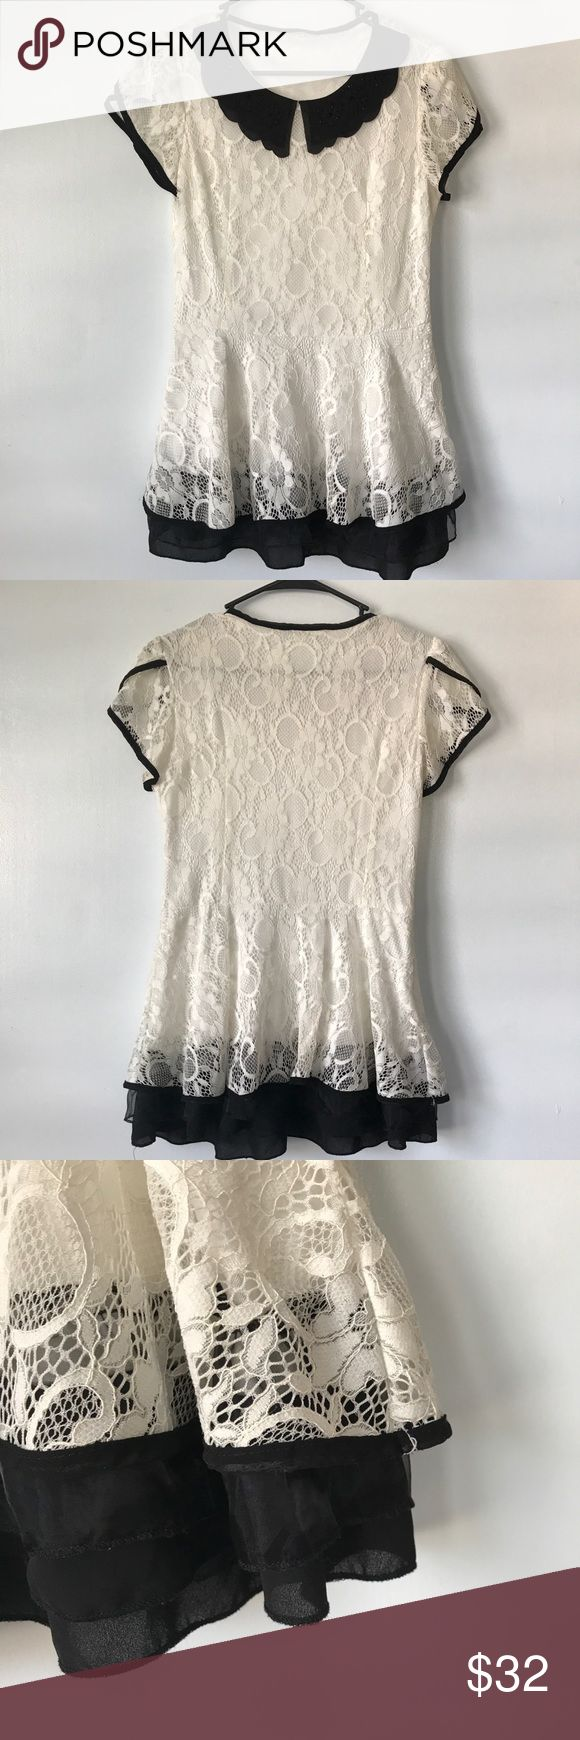 Lace peplum top Adorable black and white peplum top with black studded collar and tulip sleeves. Layered skirt. Excellent condition! Tops Blouses